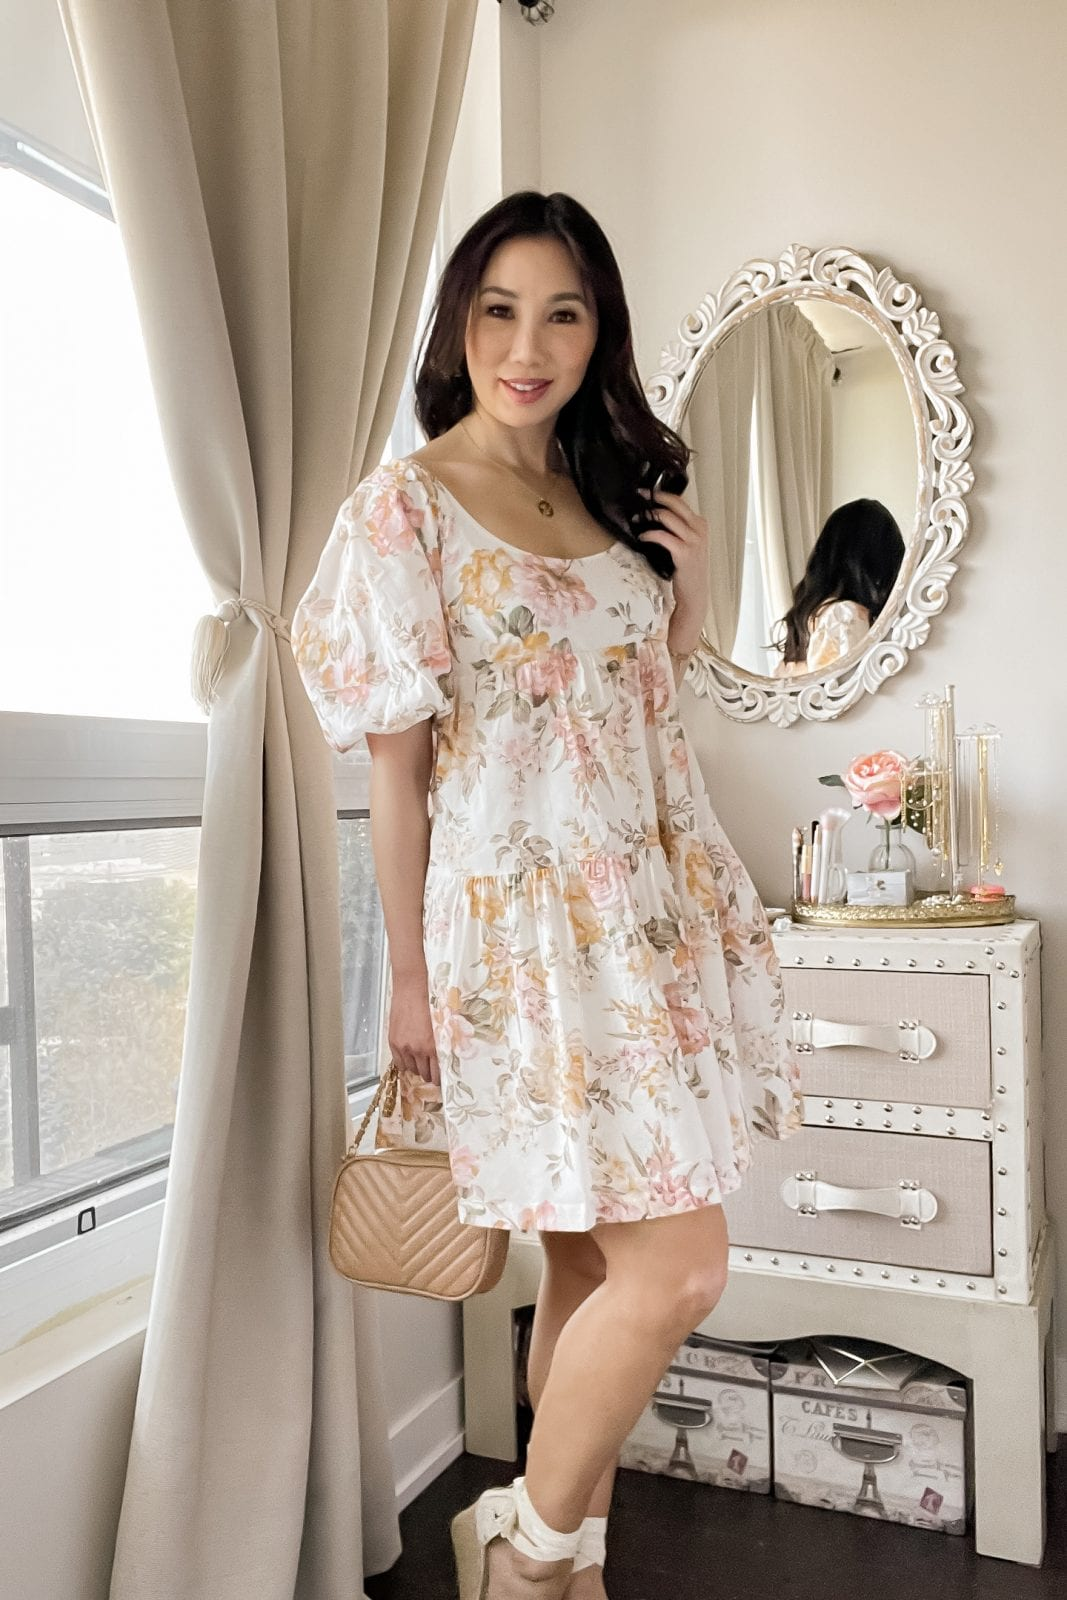 3 summer dresses from Ever New - This flowy babydoll dress is the perfect casual dress to wear on those hot summer days. With a darling floral print and a cute puff sleeves it takes weekend casual to the level. Styled by Eileen Lazazzera of yesmissy.com